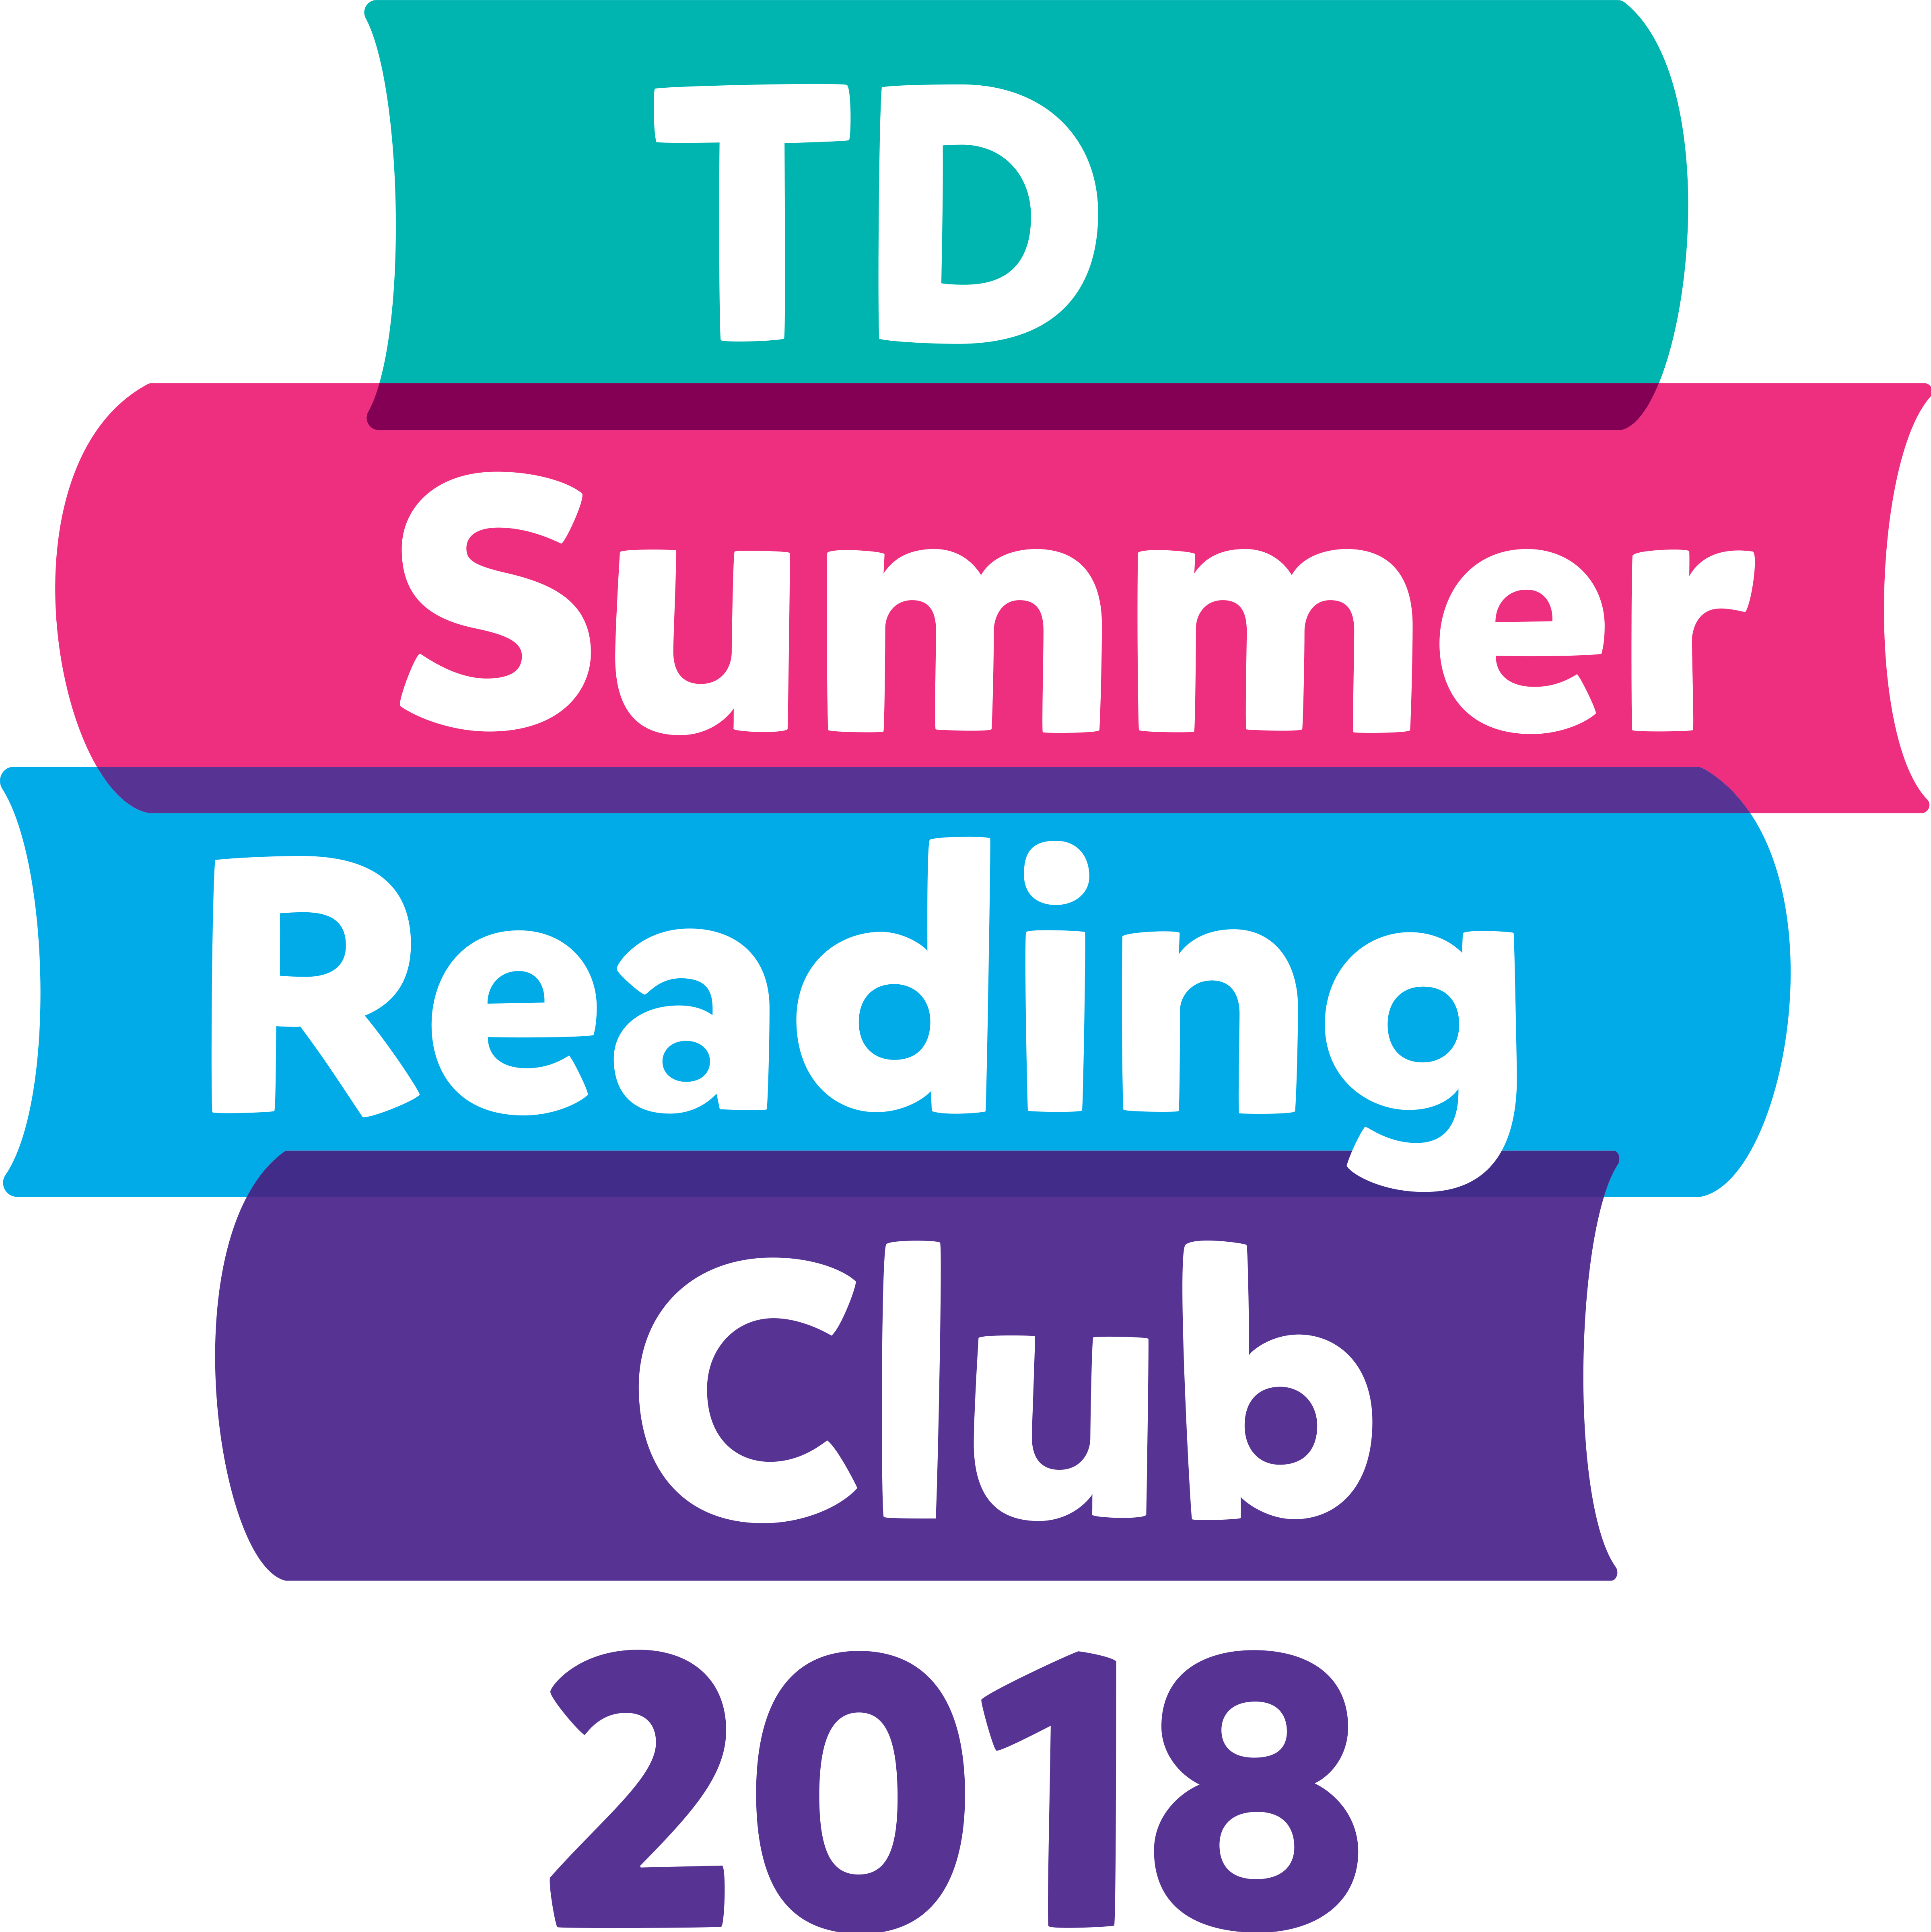 Kids book club clipart black and white stock TD Summer Reading   Brantford Public Library black and white stock